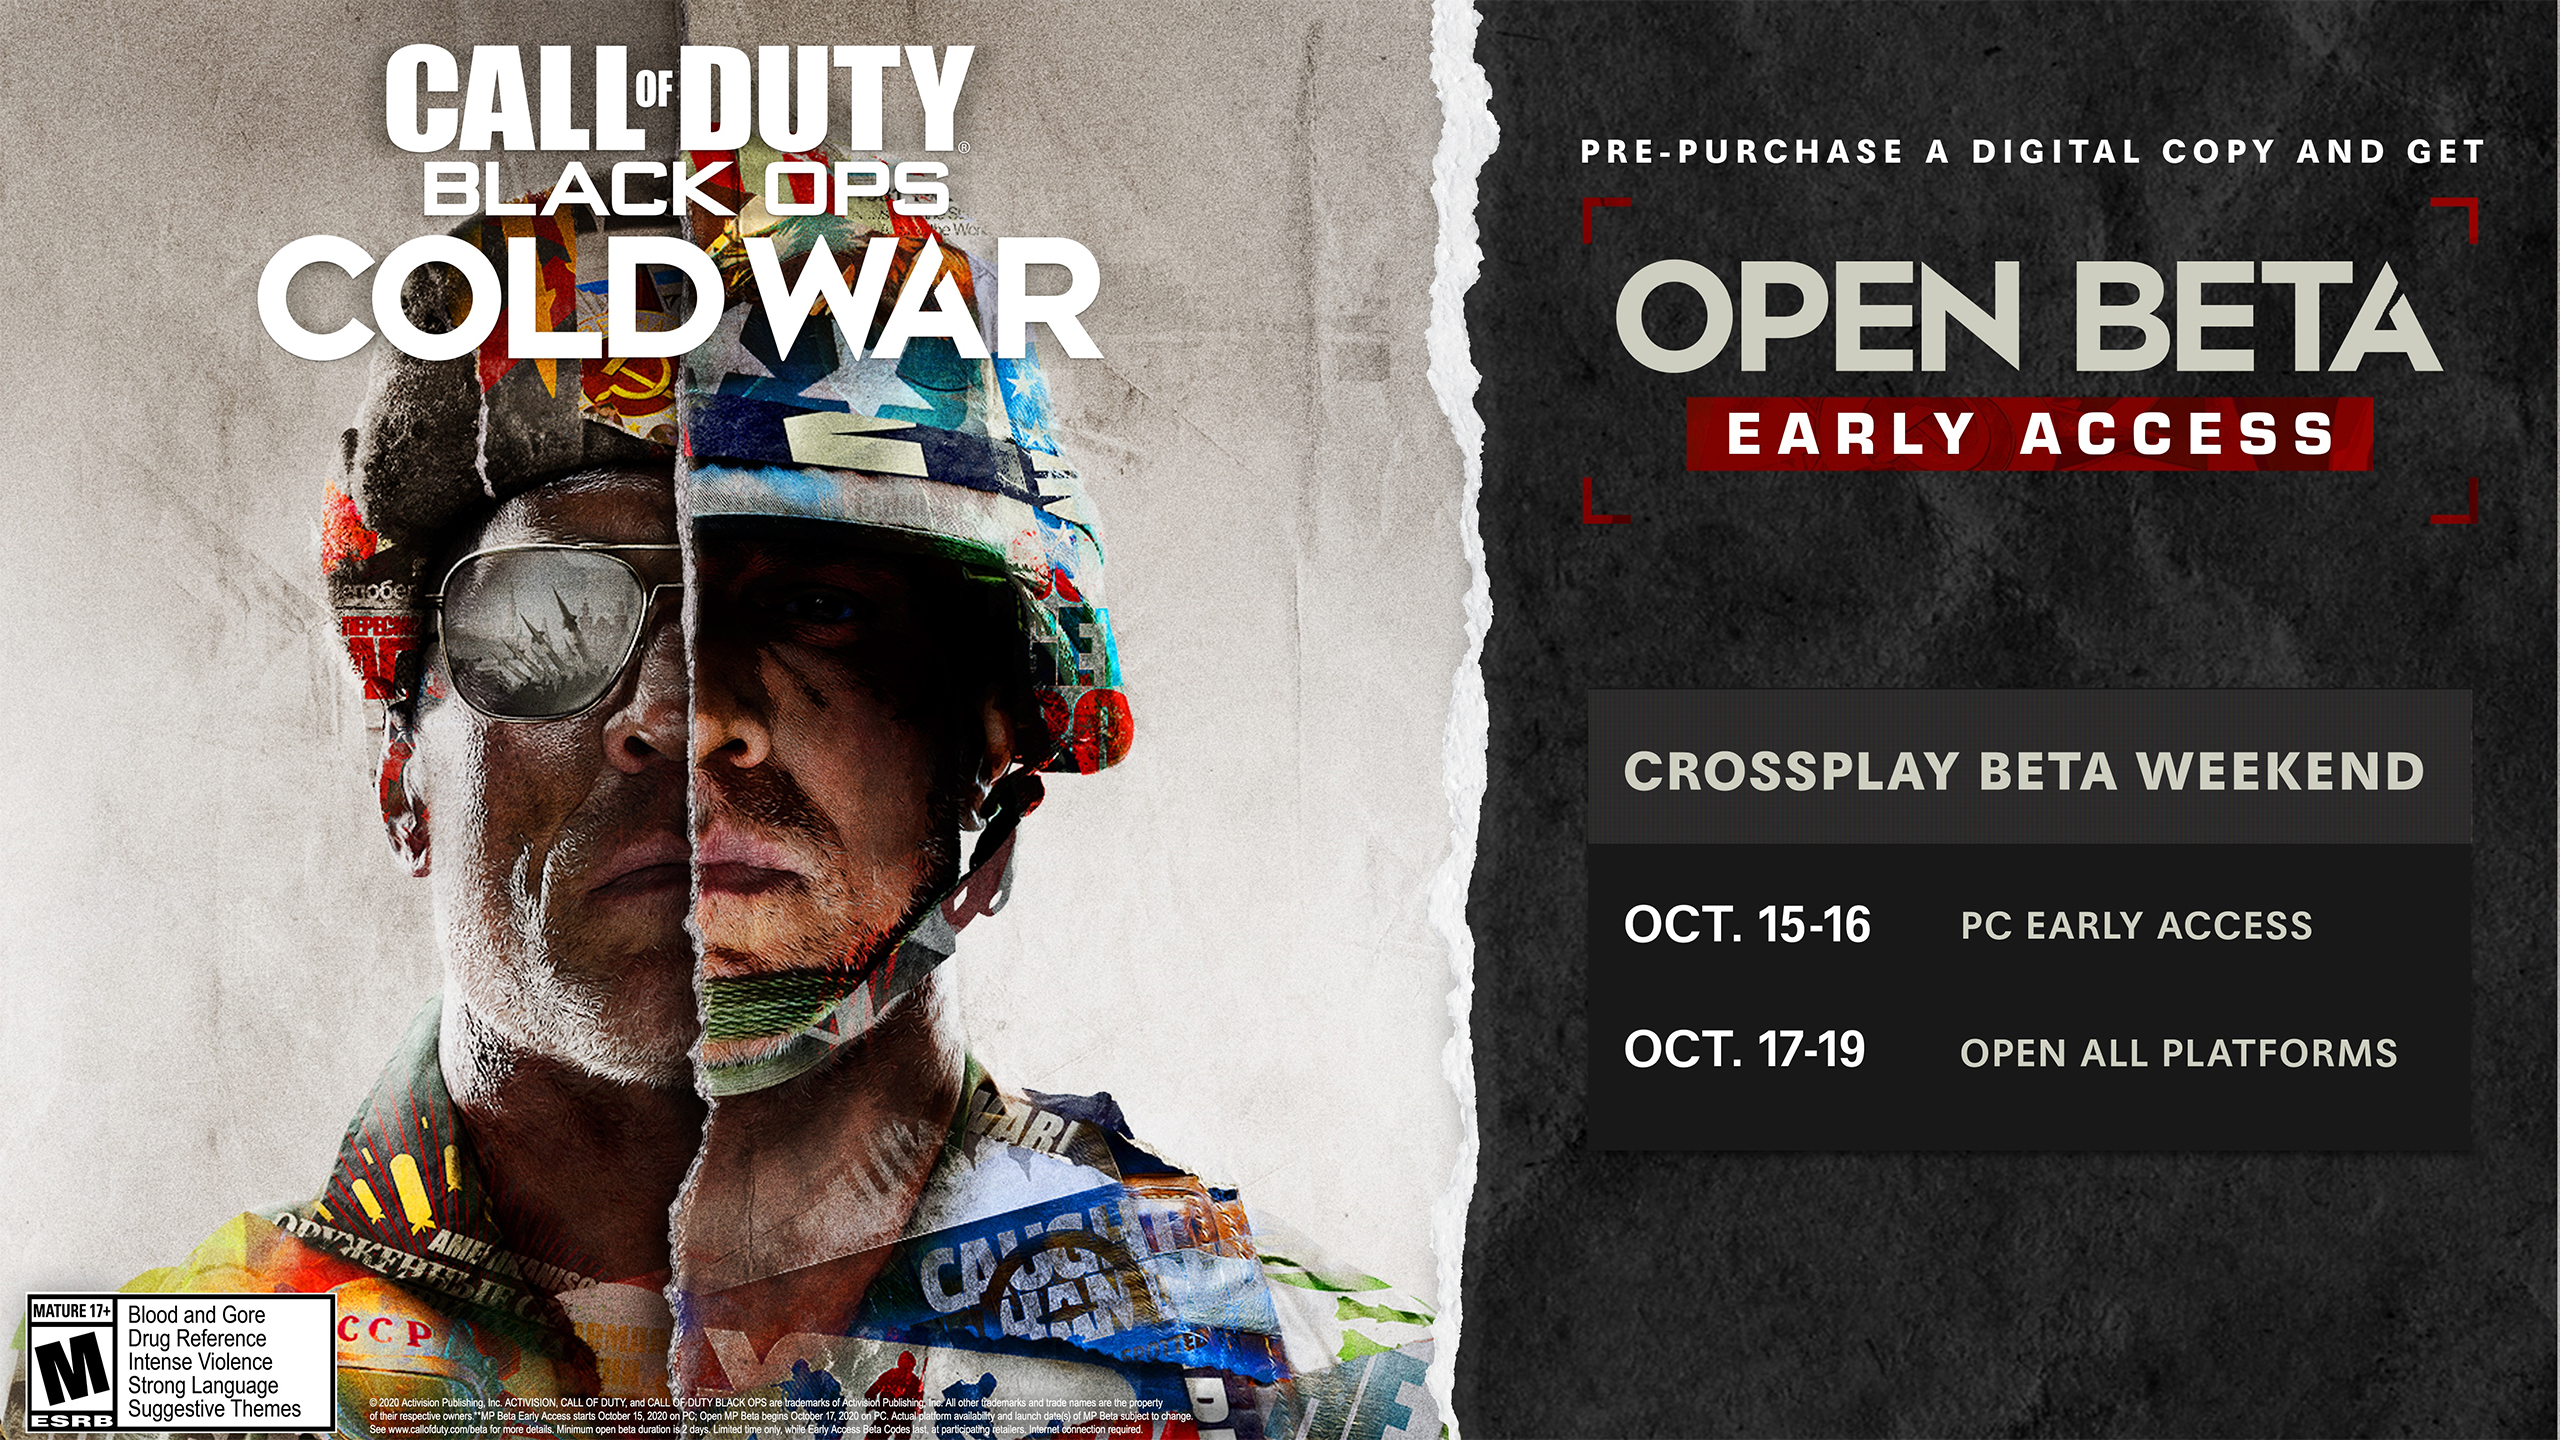 Call Of Duty Black Ops Cold War Pc Open Beta Early Access Begins October 15 Supports Nvidia Reflex And Highlights